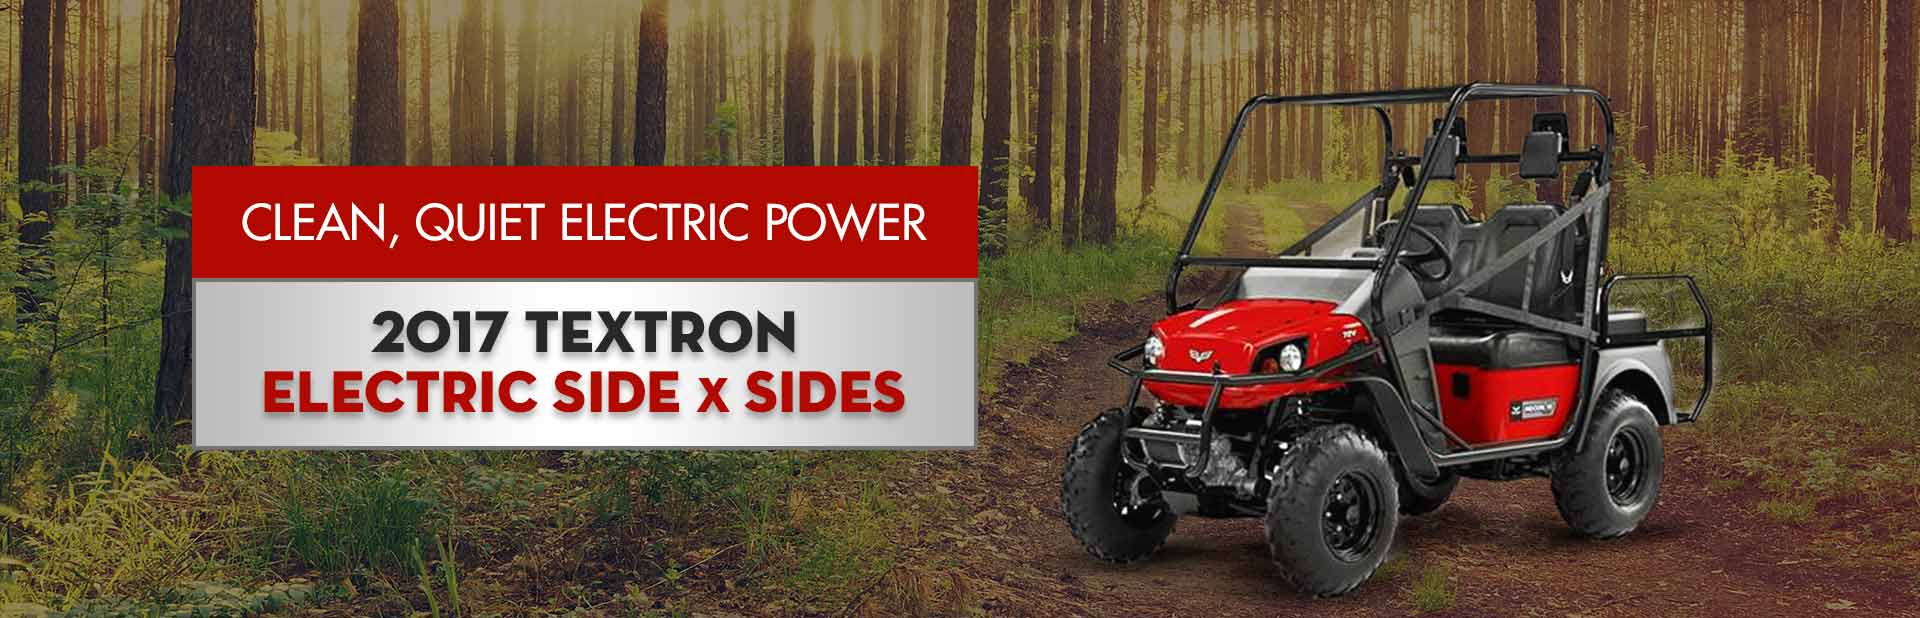 2017 Textron Electric Side x Sides: Click here to view the models.